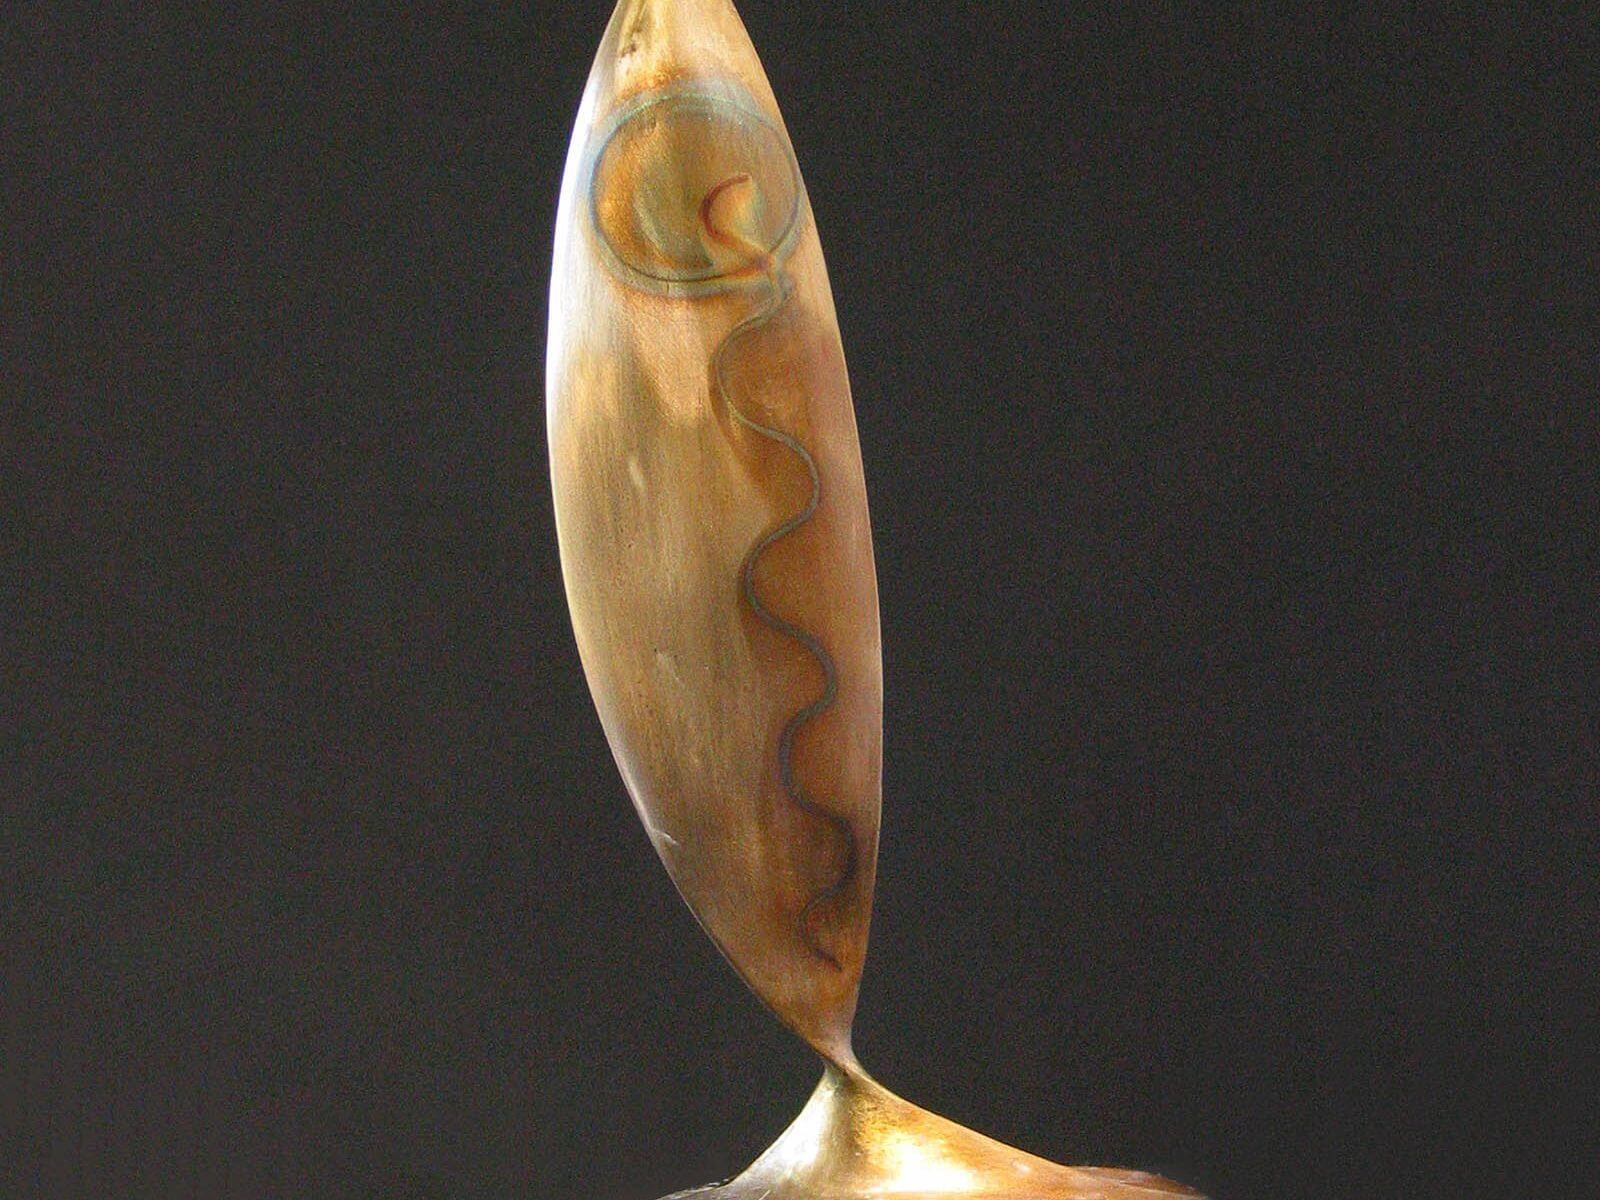 Pesce abstract fish bronze sculpture by Andrew DeVries